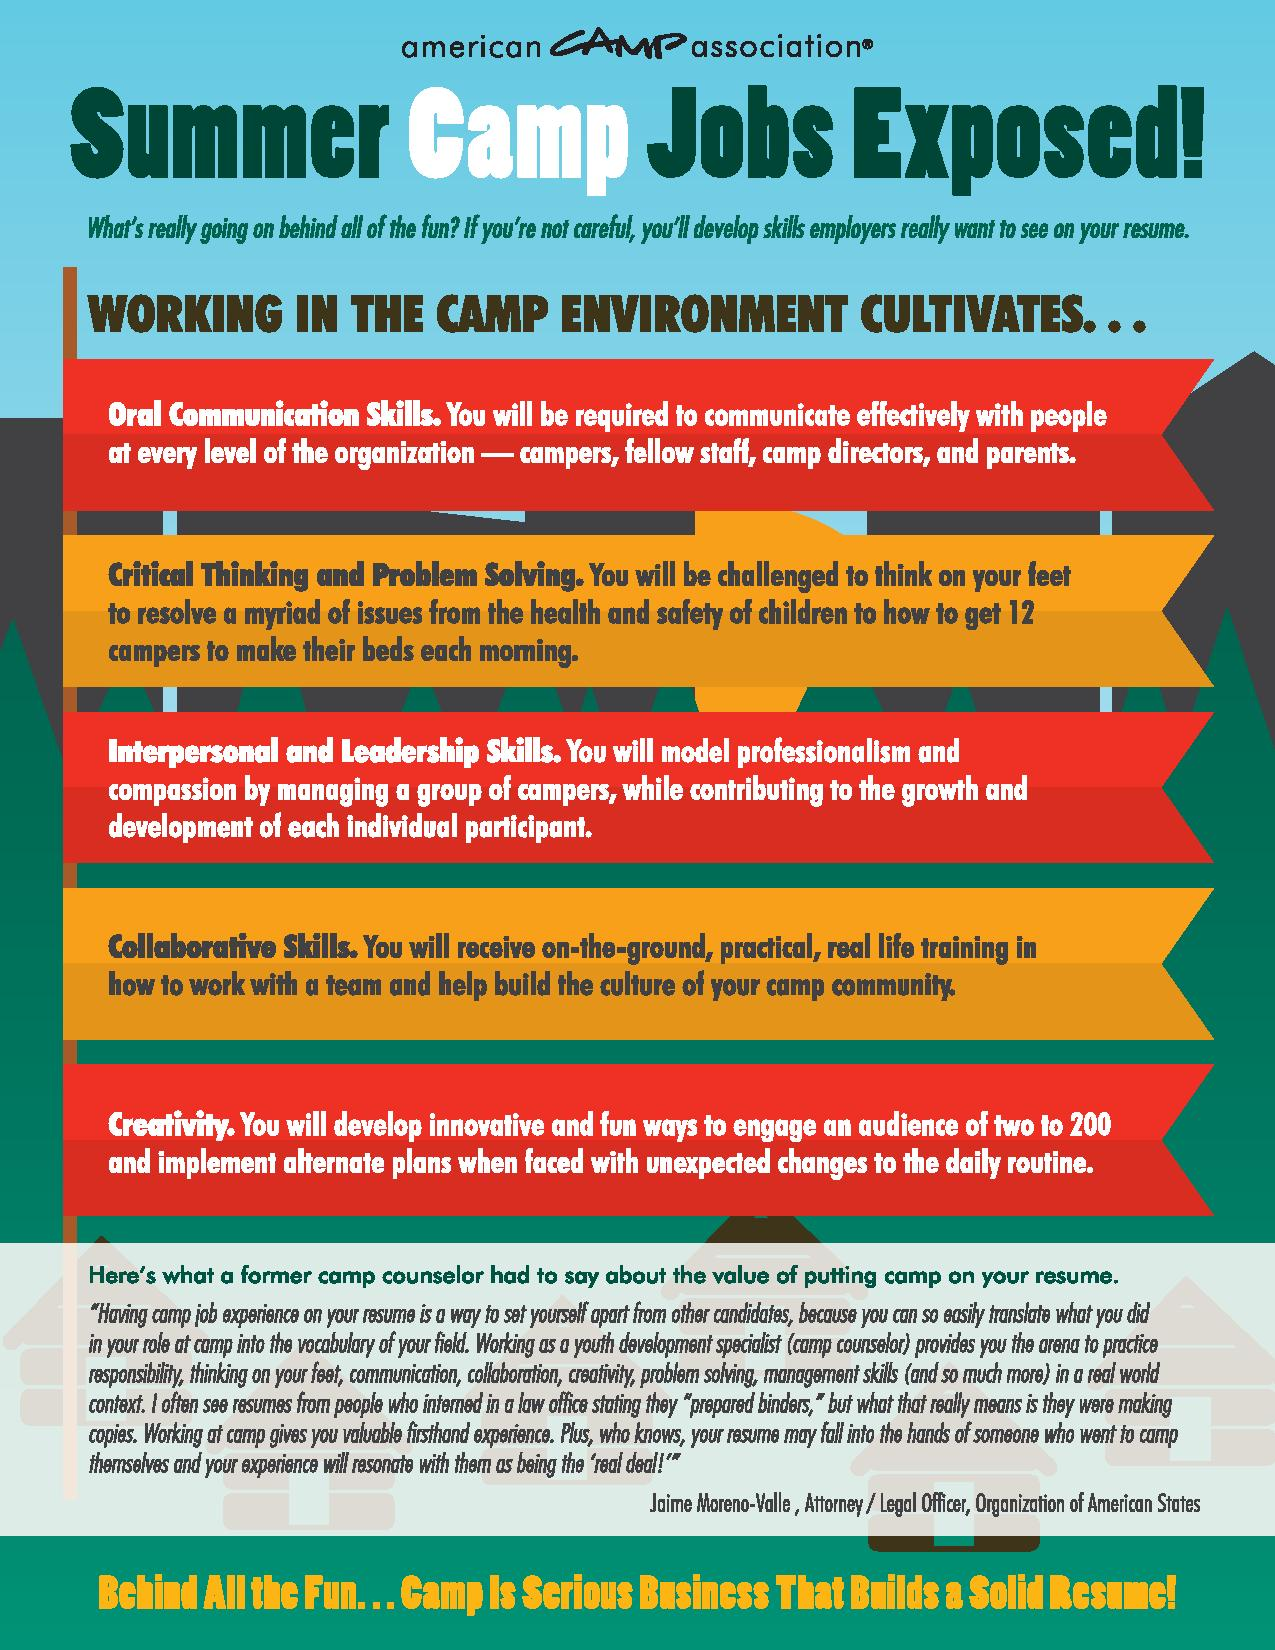 Skills Cultivated By Camp Employment